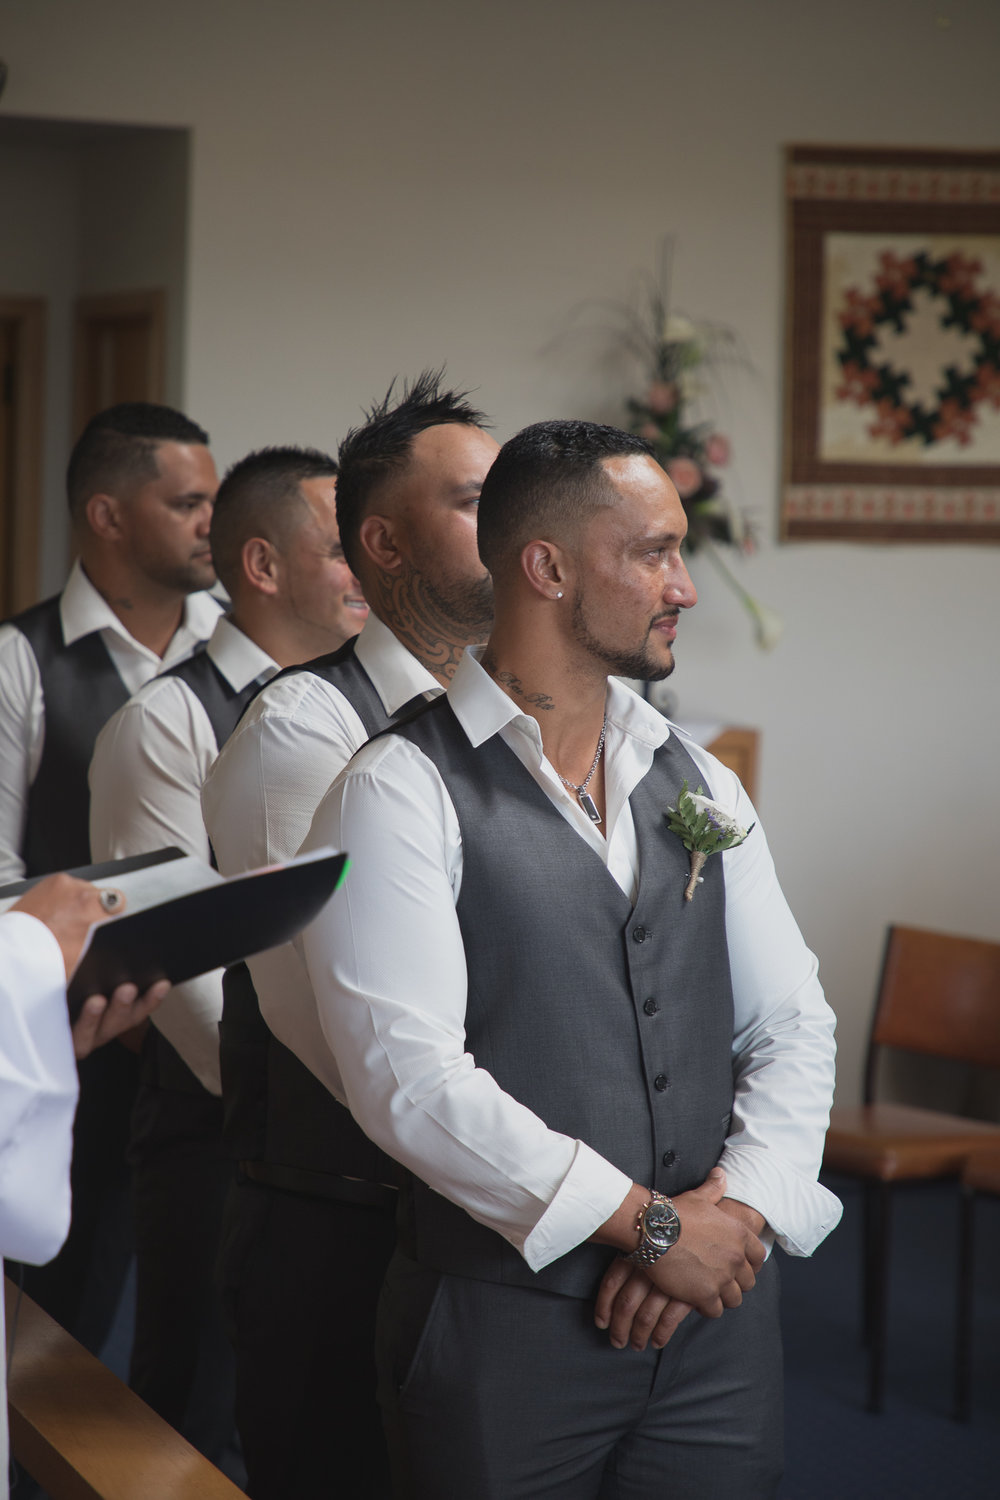 groom seeing bride in wedding dress for the first time